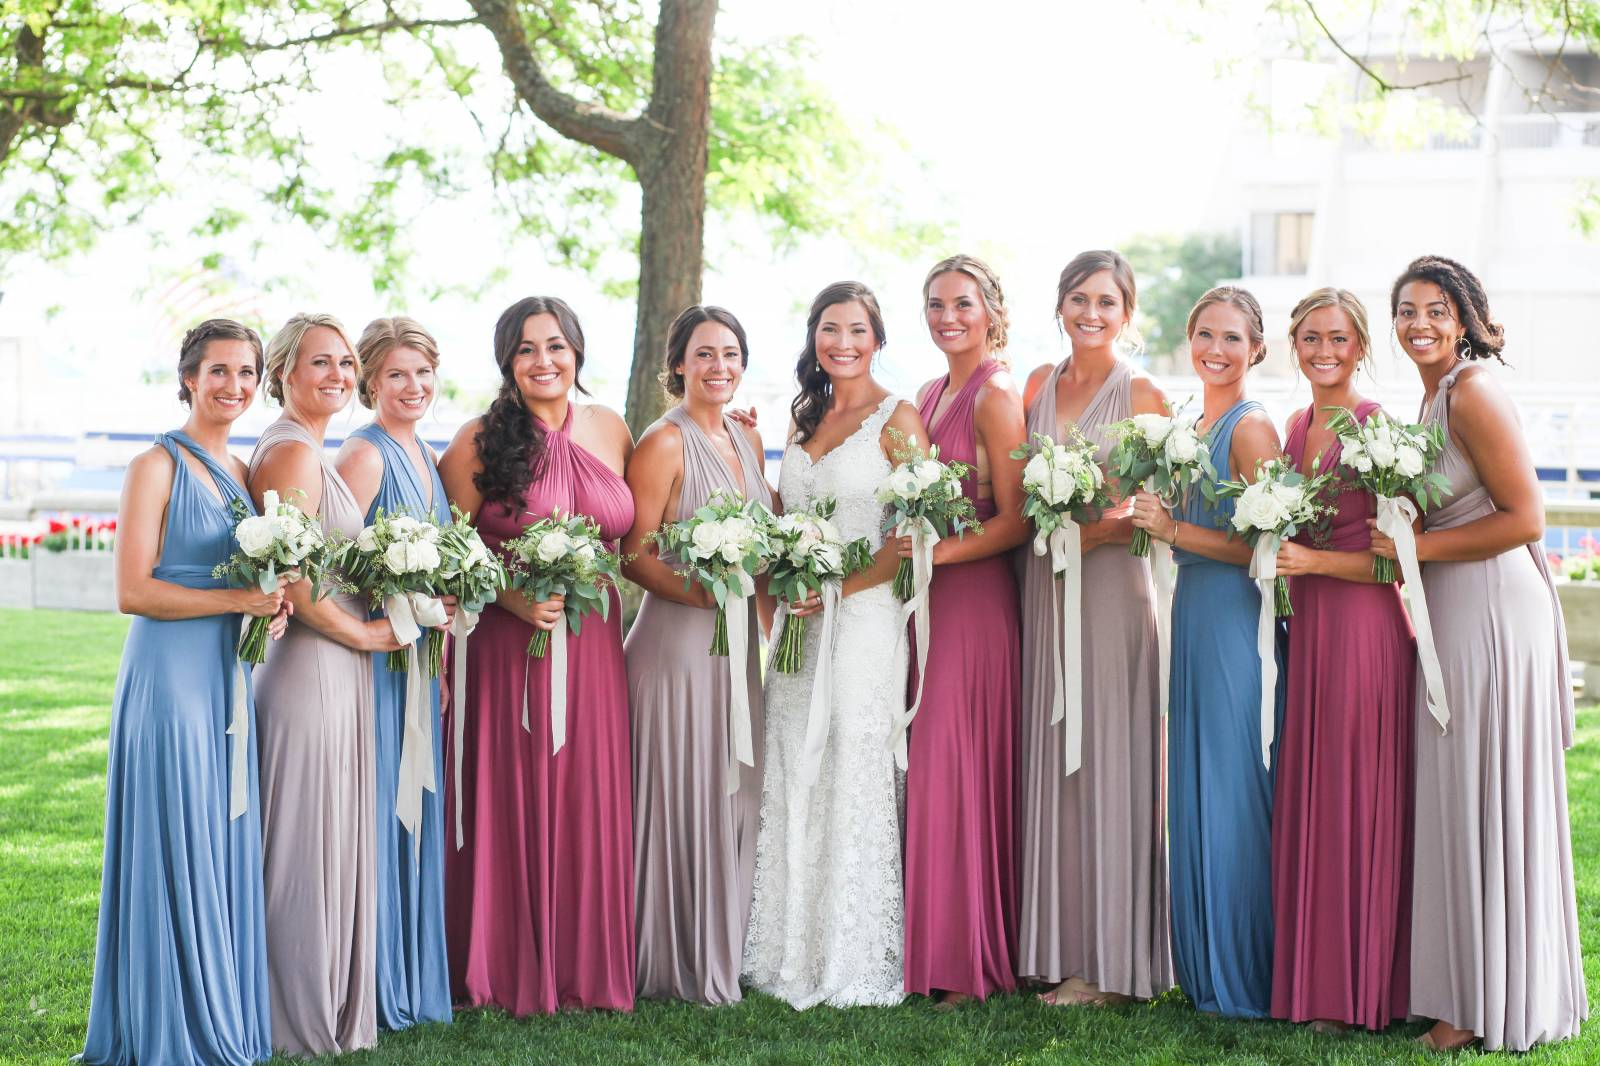 Mix + Match Bridesmaids | Fun + Colorful Lake Coeur d'Alene Wedding